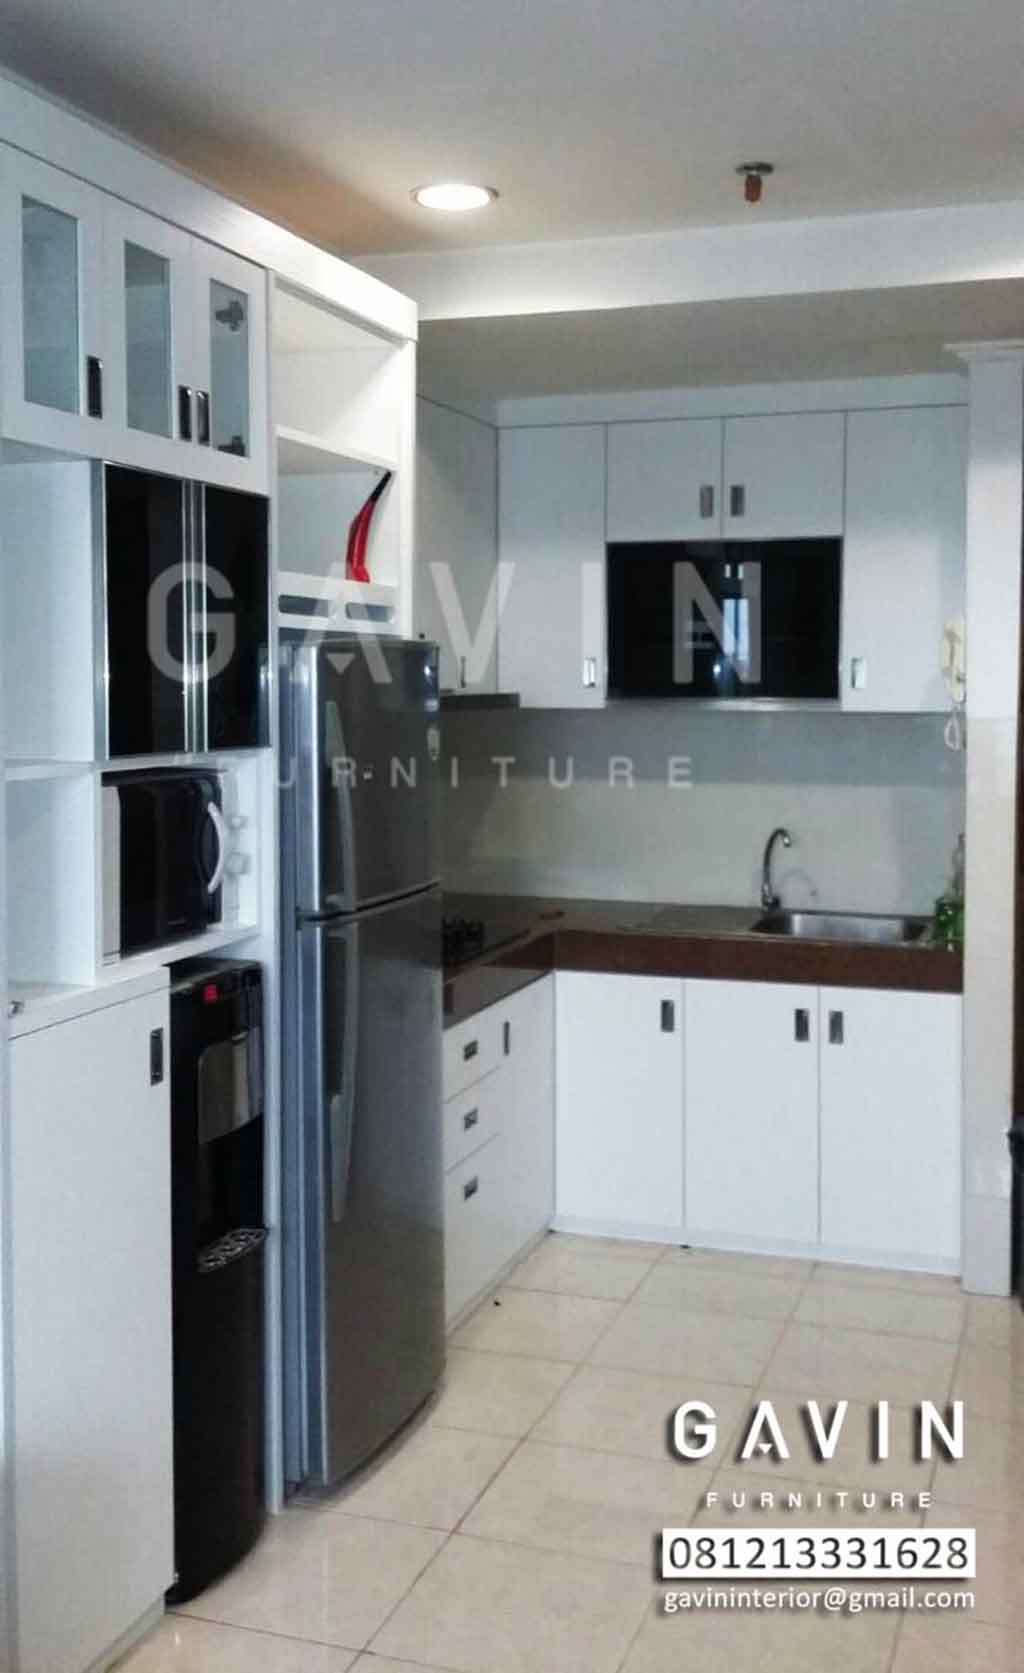 100 Gambar Kitchen Set Minimalis Dan Model Kitchen Set Modern Terbaru